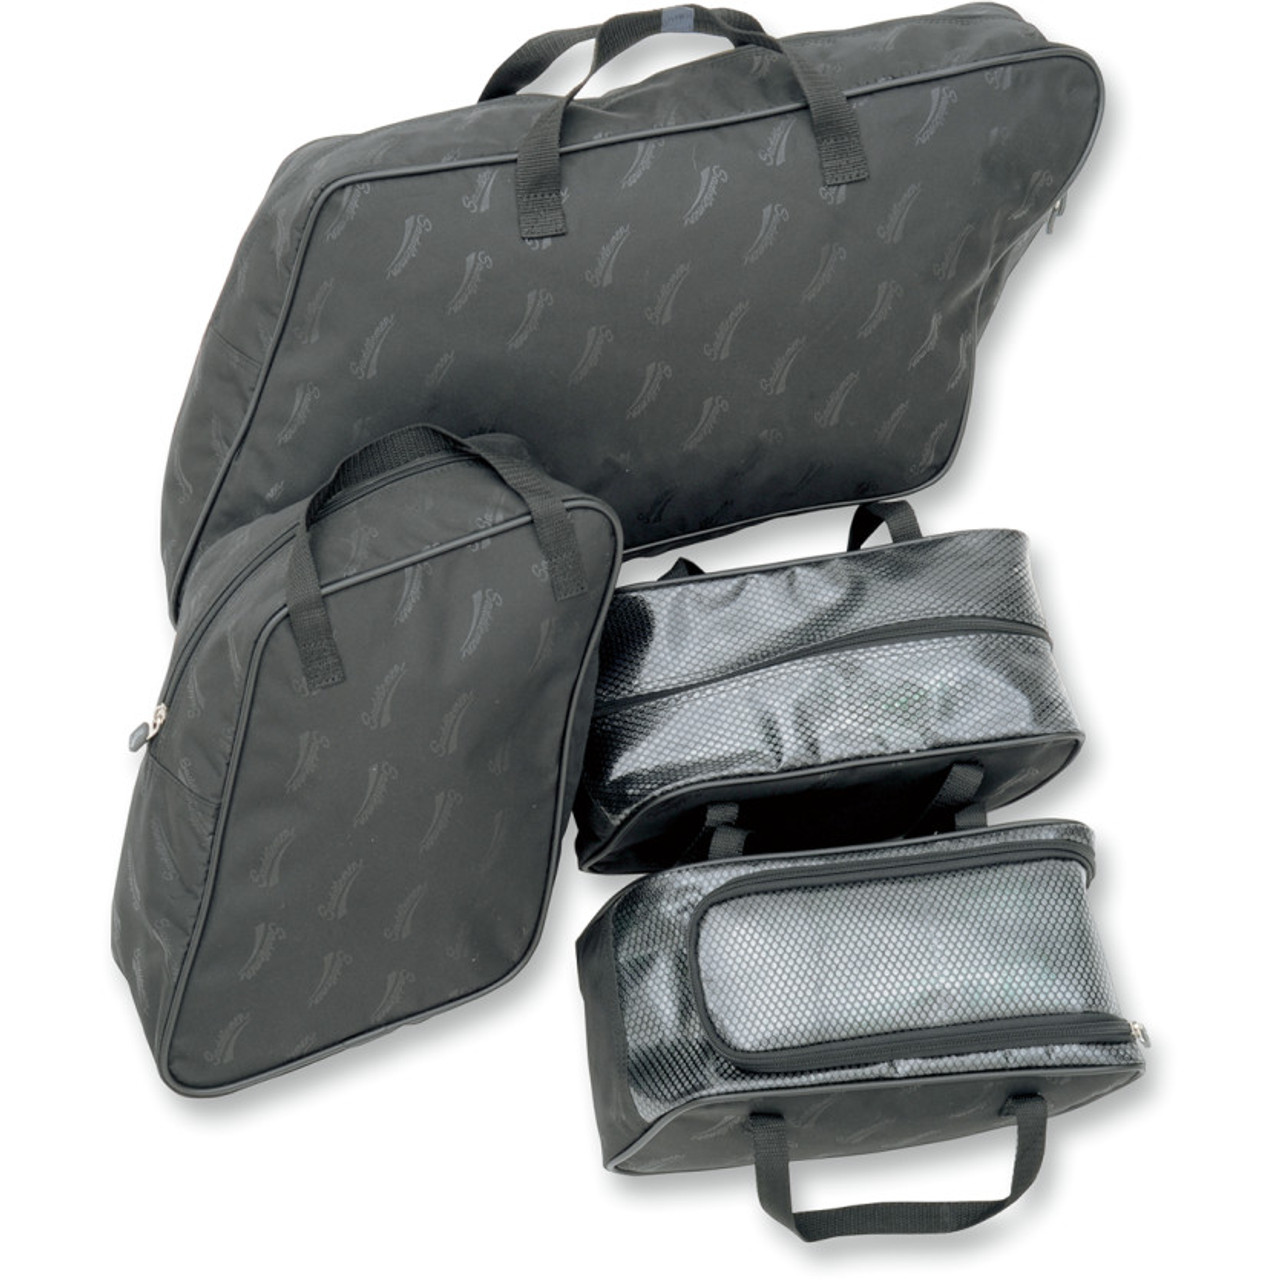 Frames & Fittings High Quality Black Luggage Saddlemen Liners Panniers For Harley Touring Models